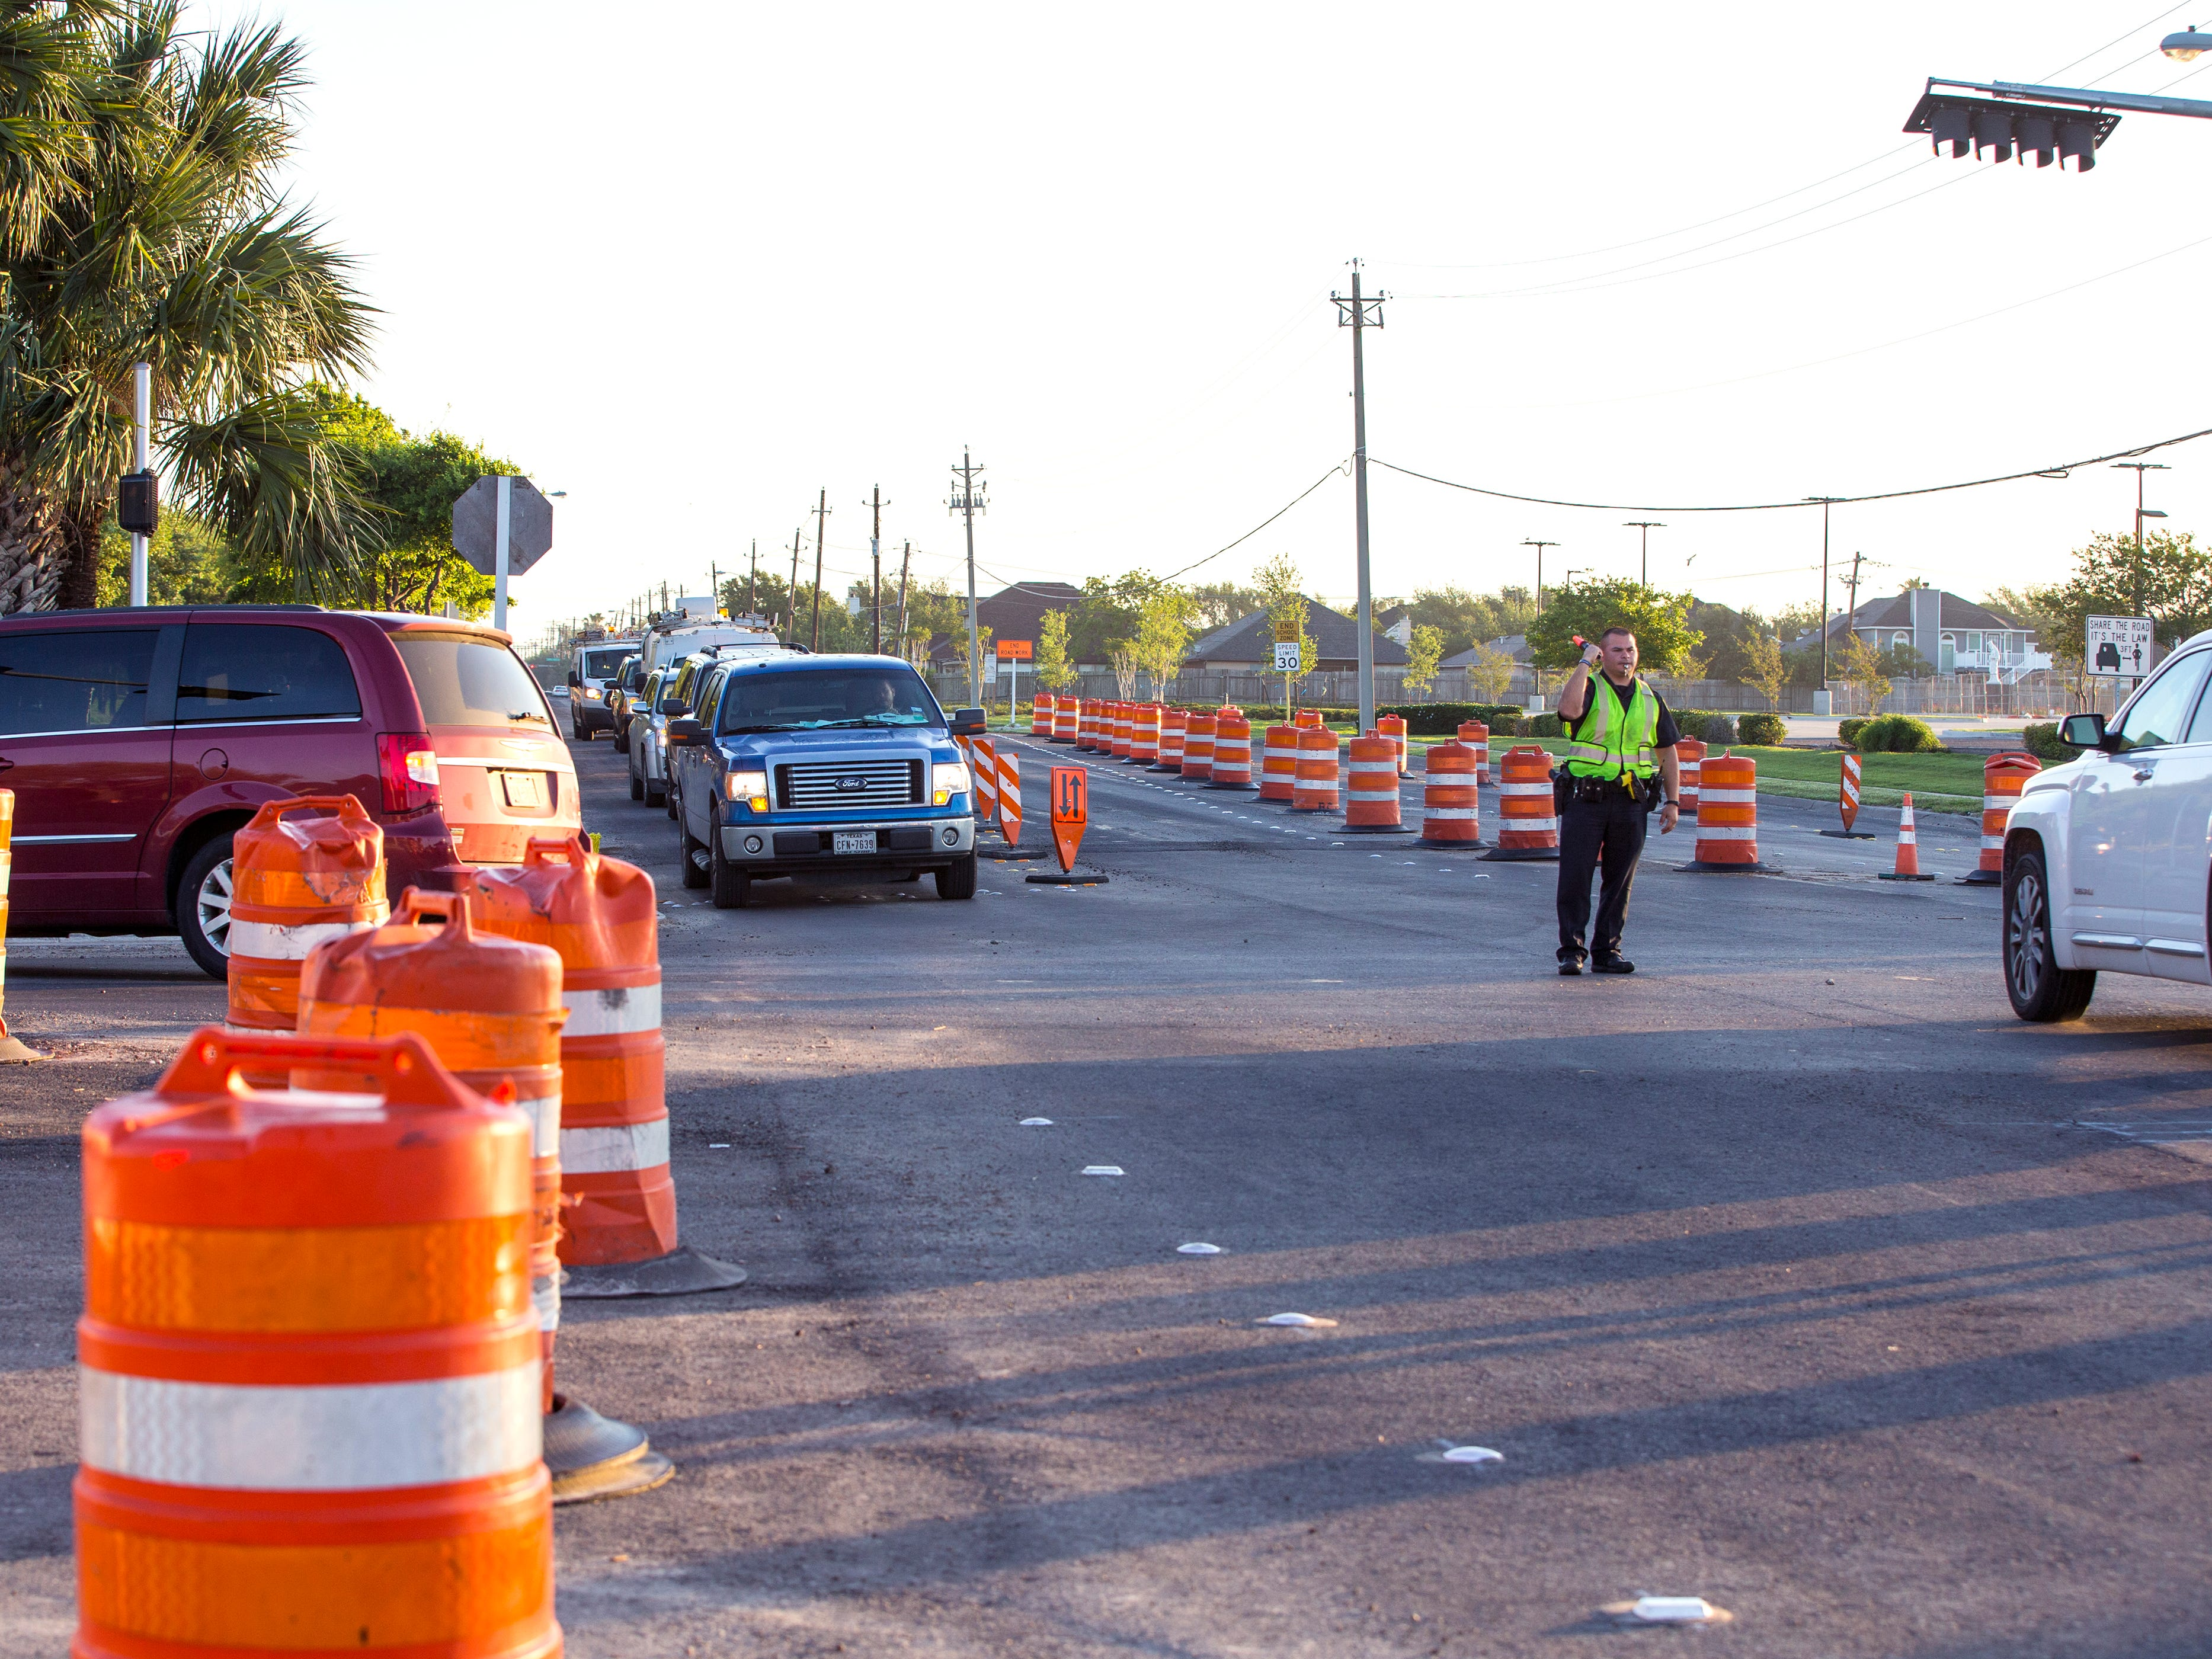 An officer with the Corpus Christi Police Department directs traffic at Everhart Road and Yorktown Boulevard on April 10, 2019. Construction is scheduled to be complete by the end of April after nearly two years  of work. The original completion date was set for October 2018.